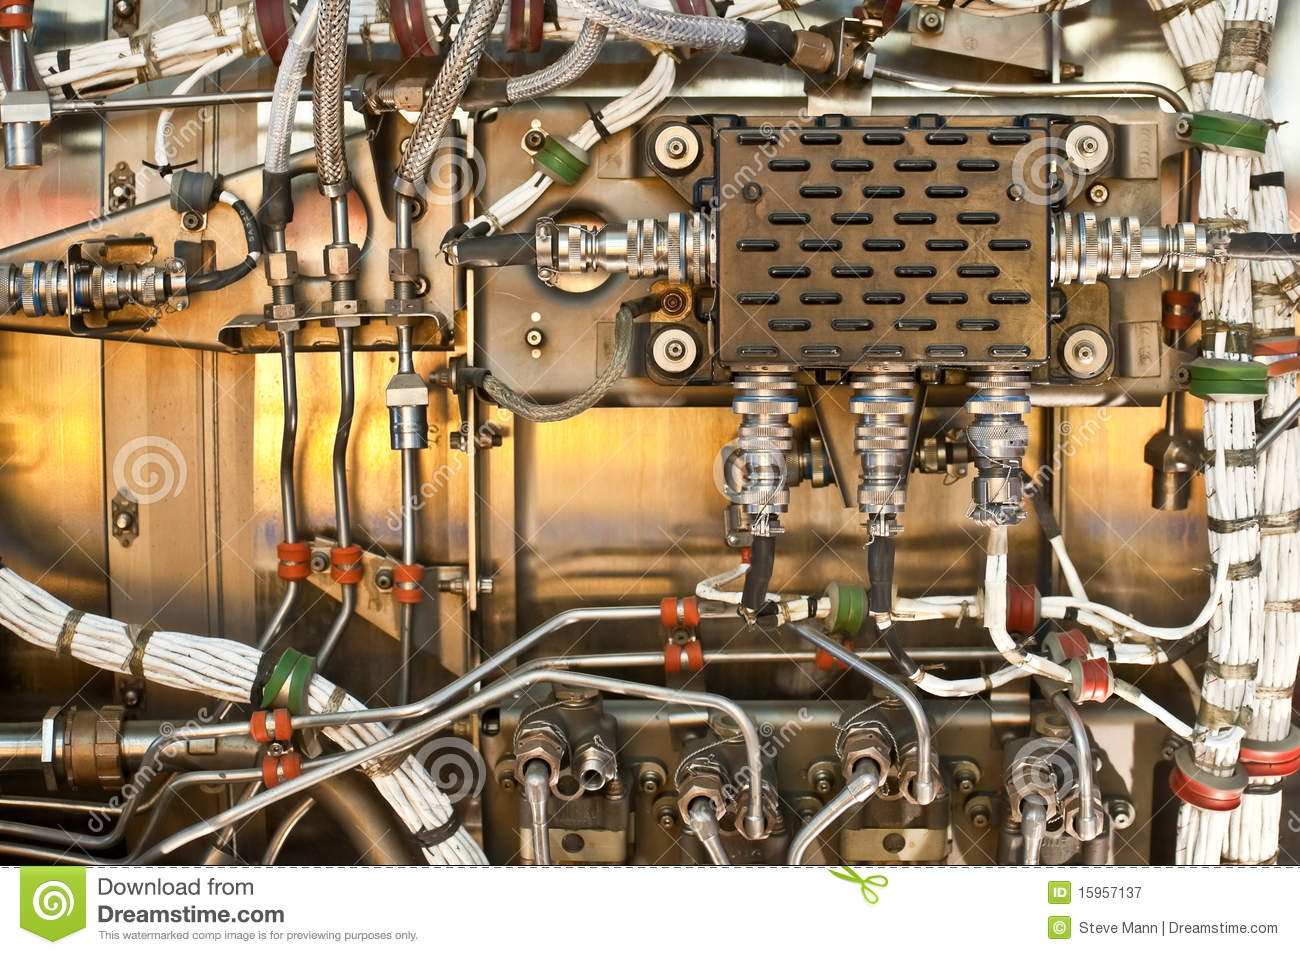 Wiring and hydraulics